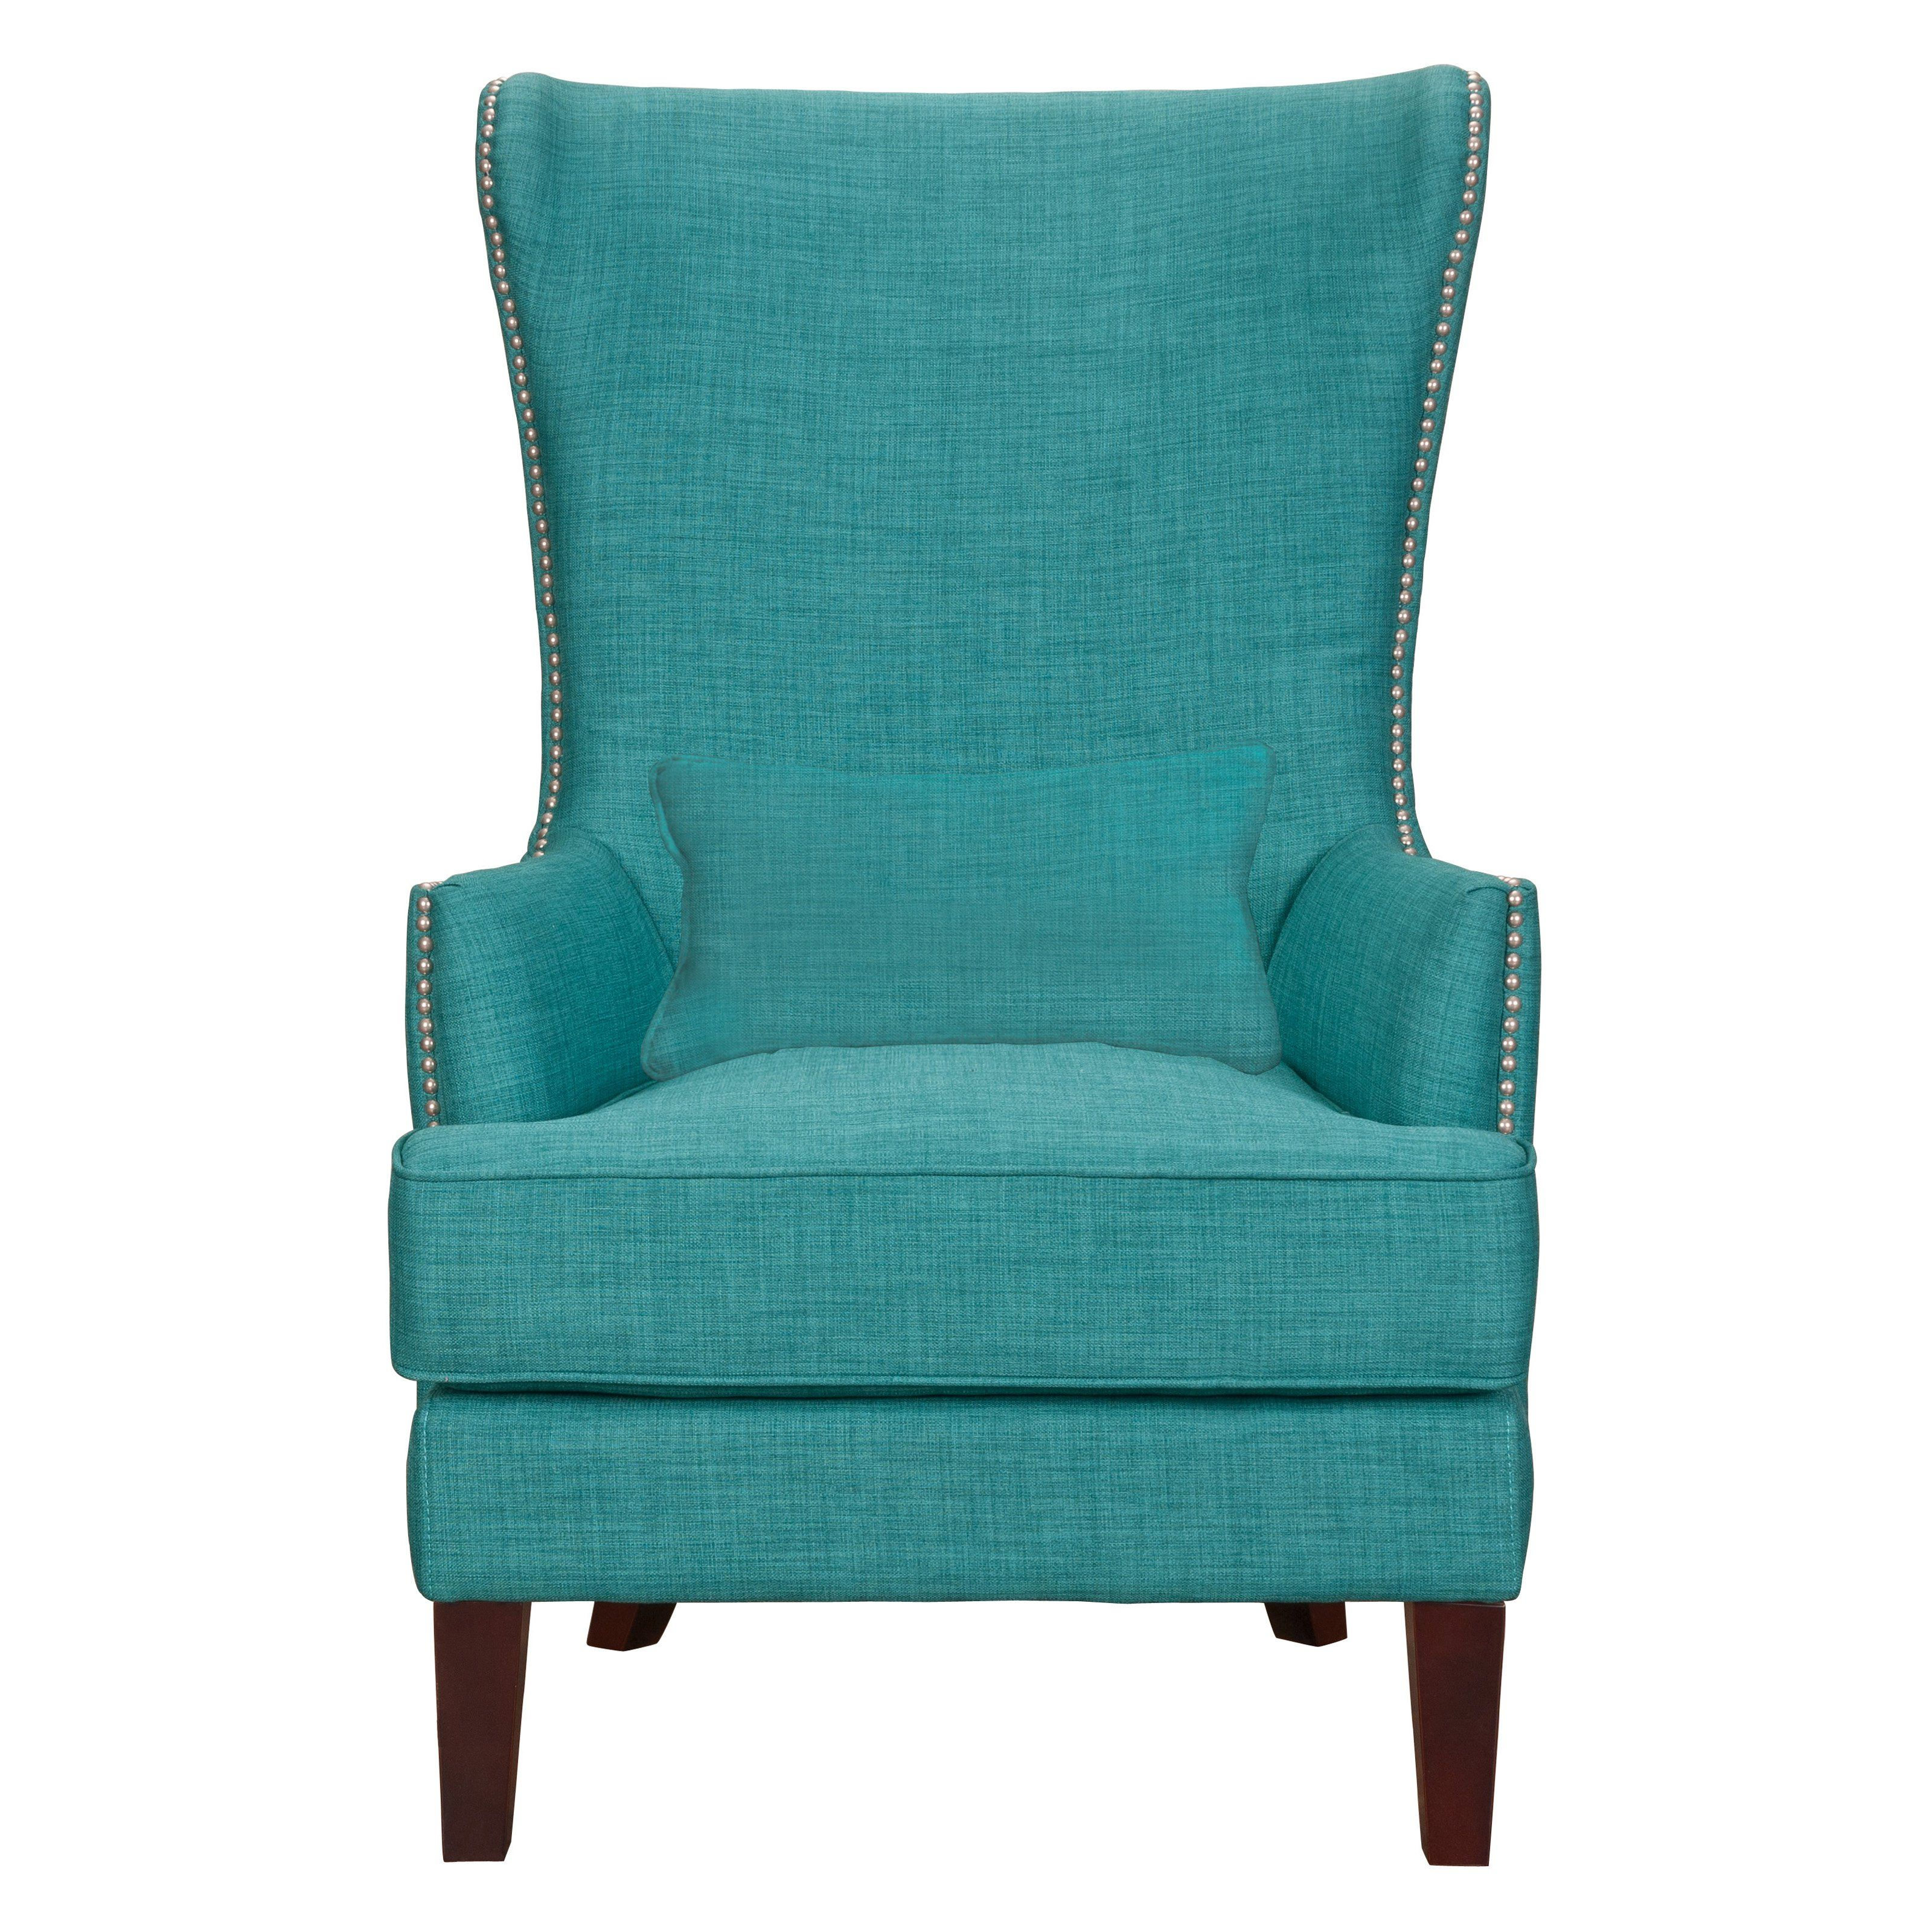 Picket House Furnishings Kori Chair with Chrome Nailhead Trim | from ...